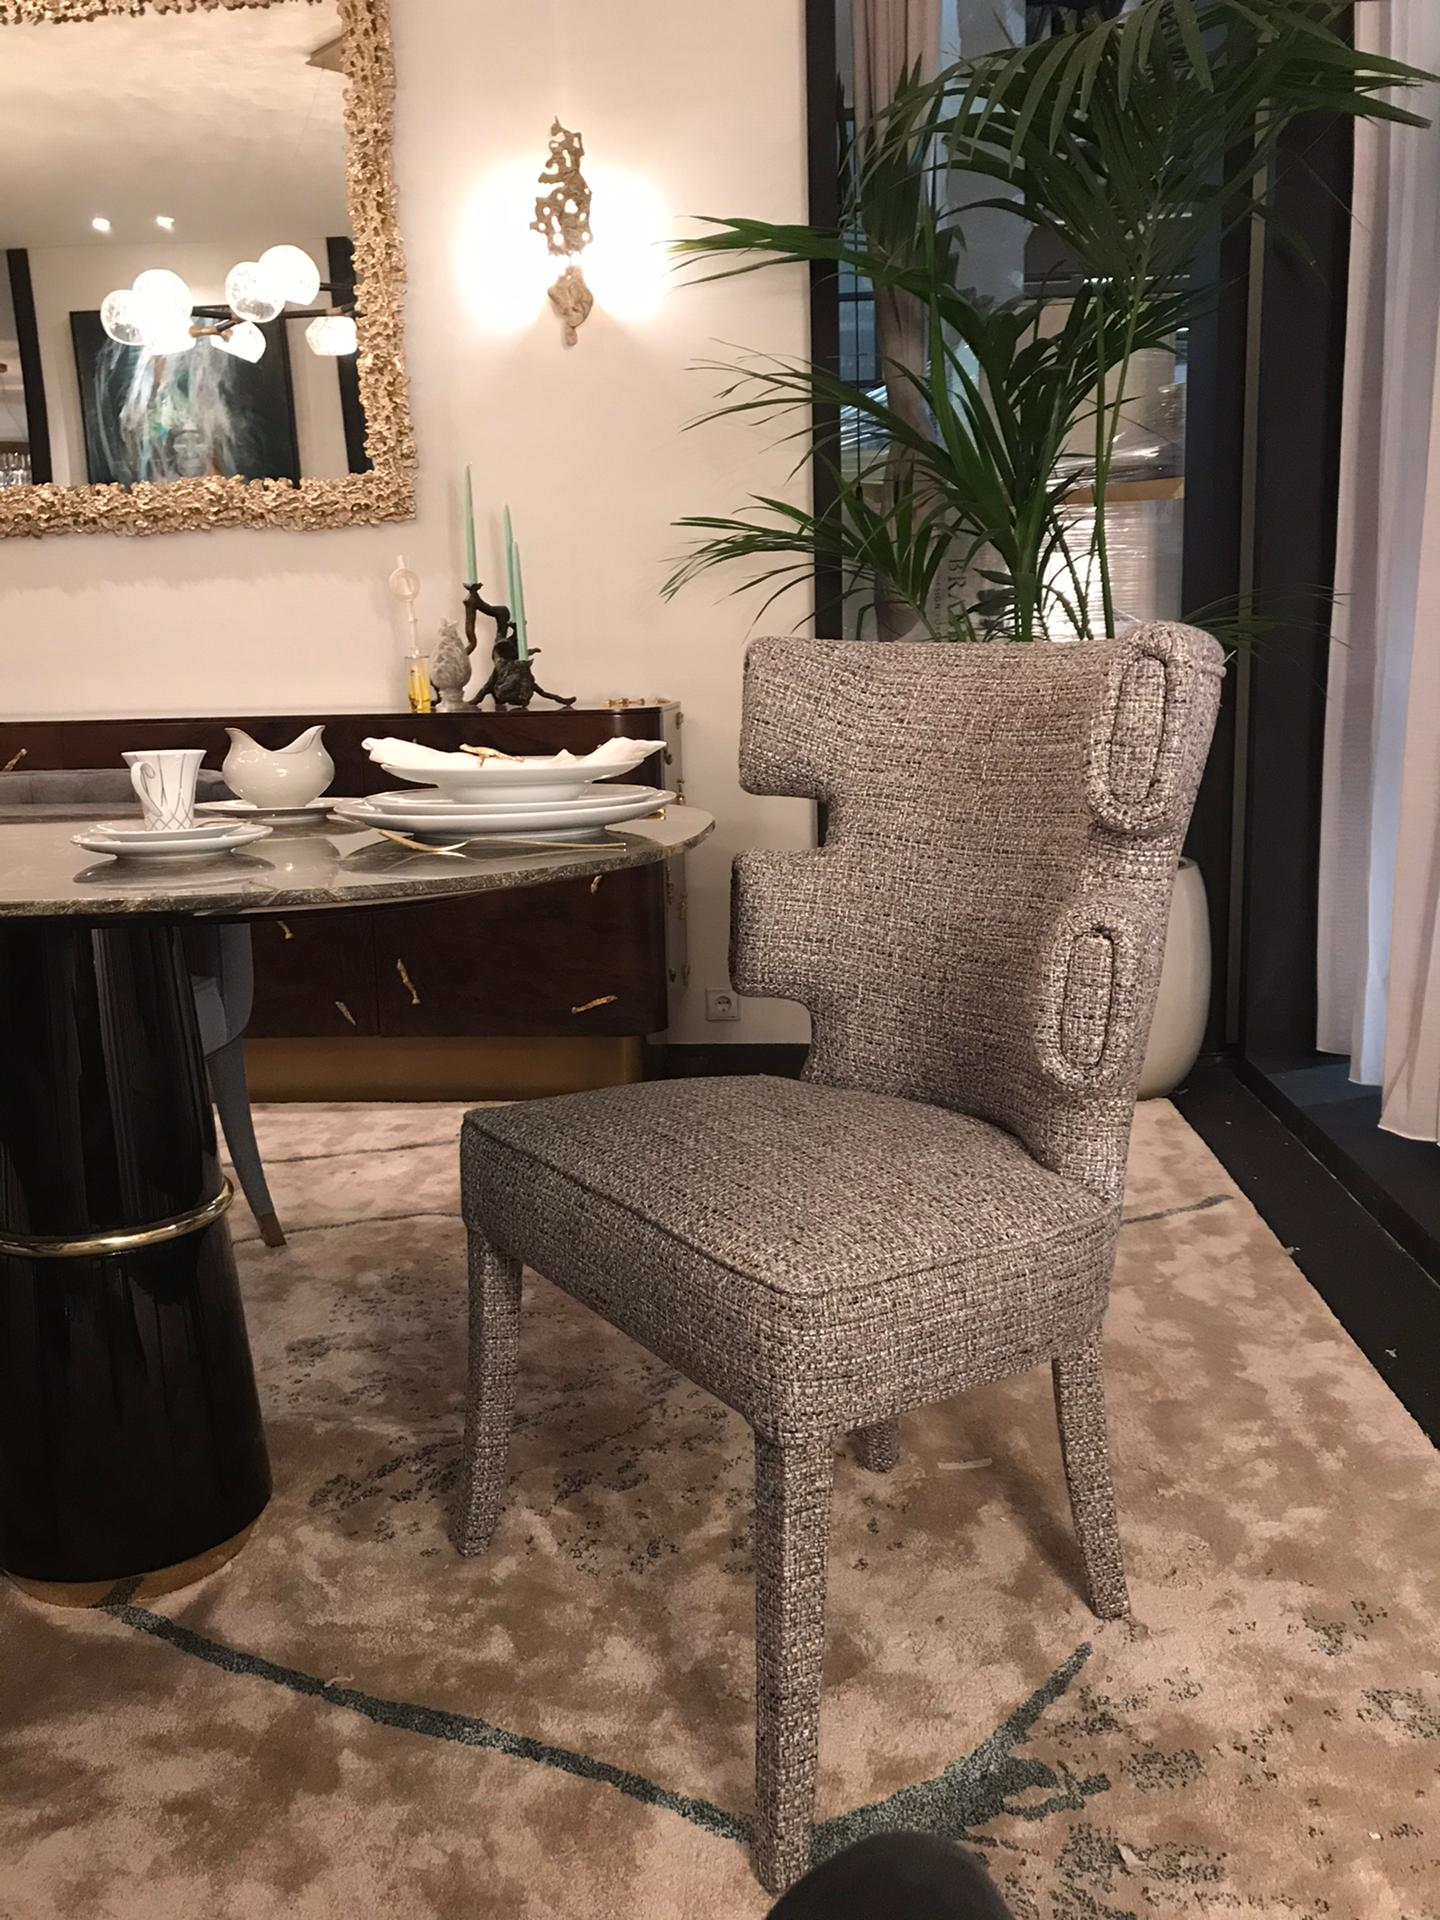 maison et objet 2020 Maison et Objet 2020: Take a Look the Best Chairs! Maison et Objet 2020 Take a Look the Best Chairs 10